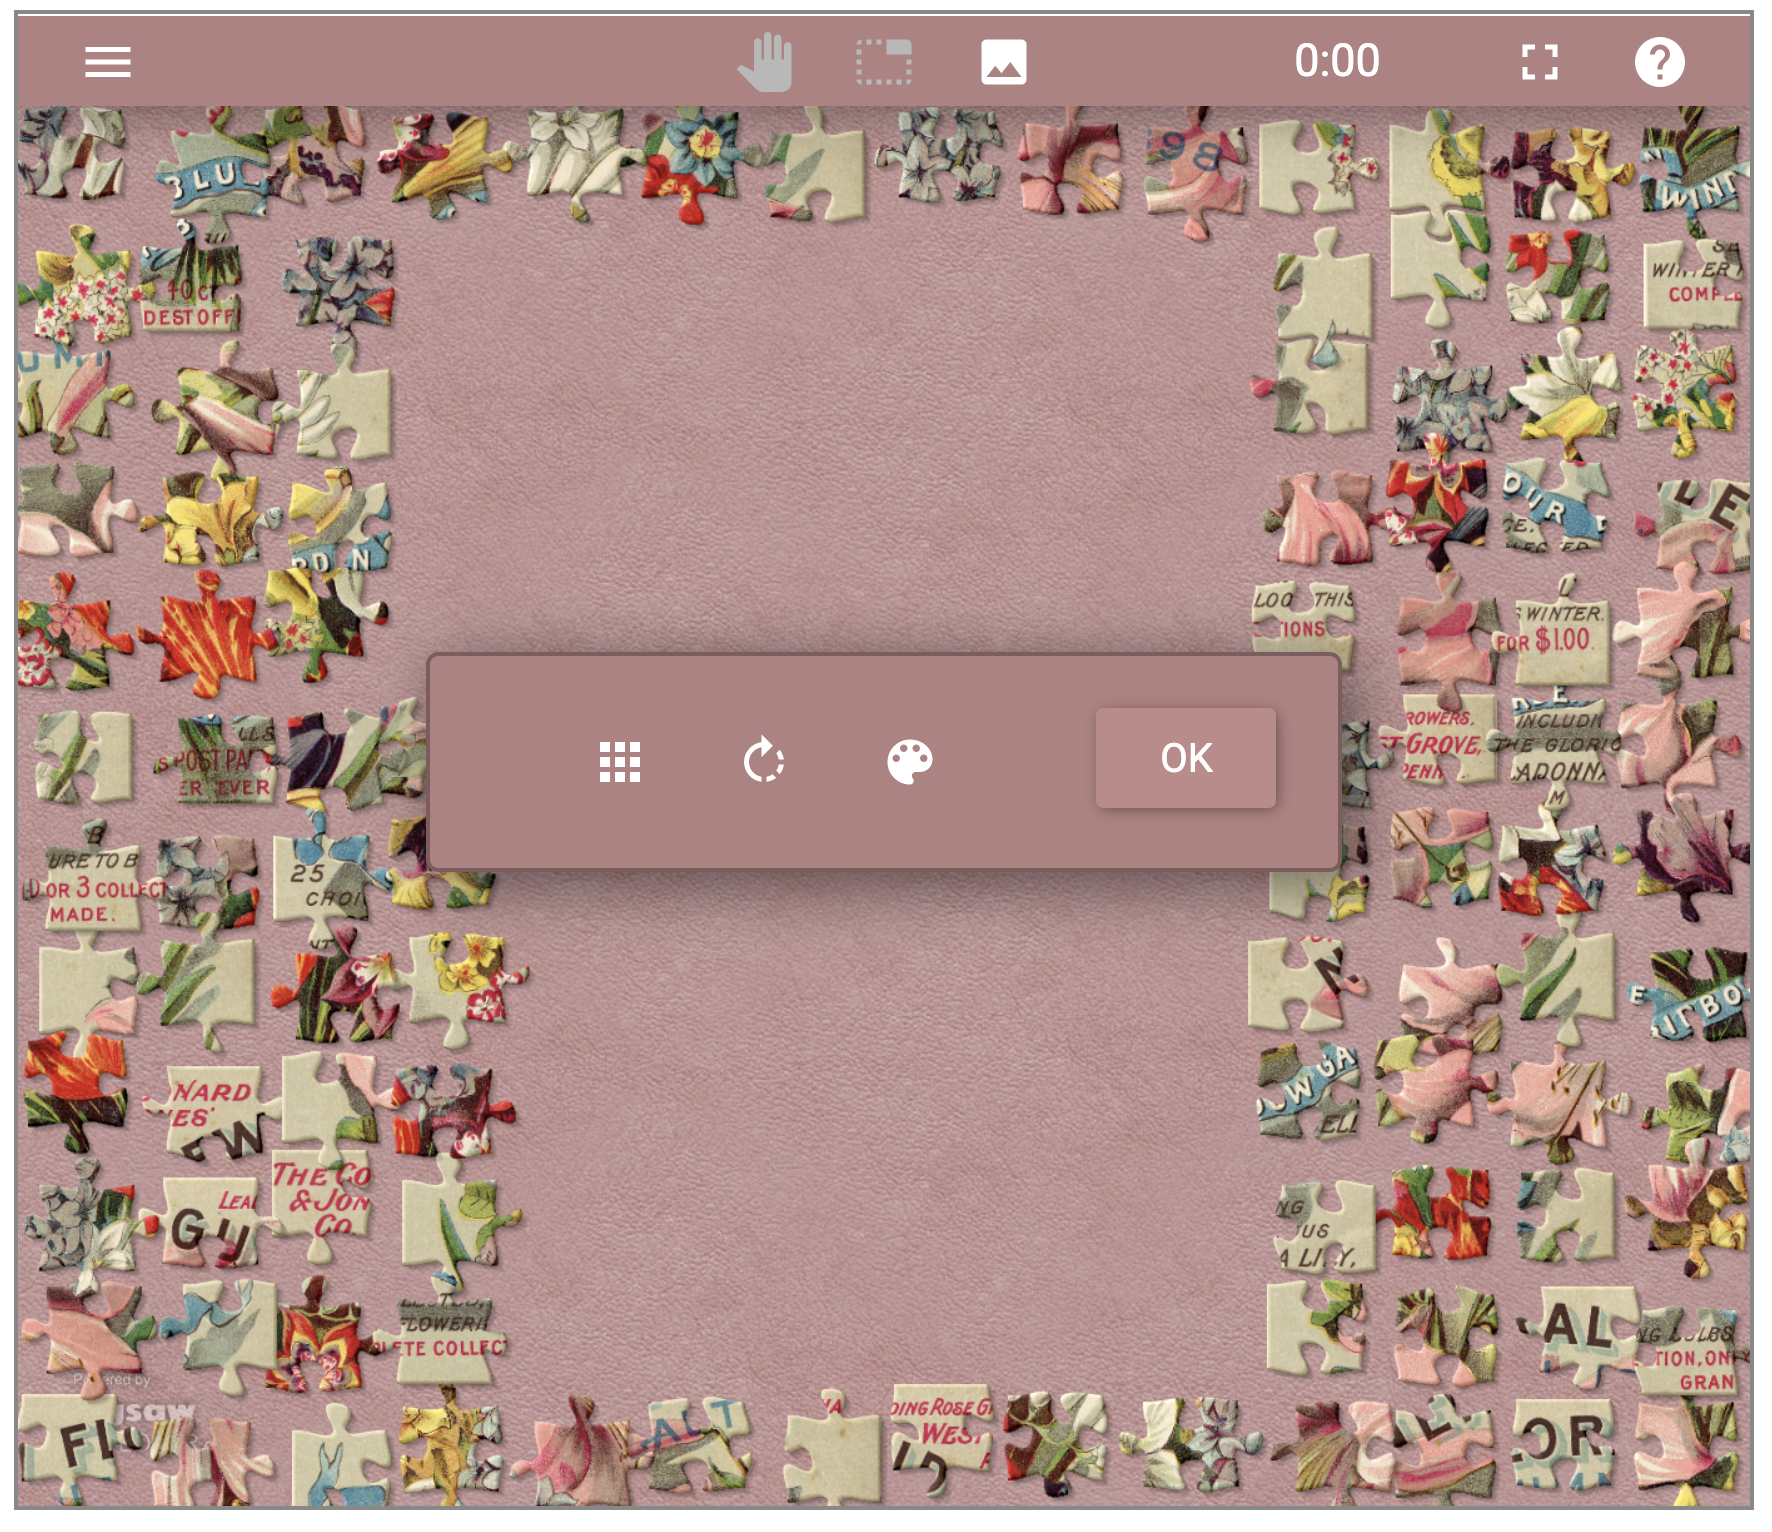 Screenshot of digital jigsaw puzzle with pink background.